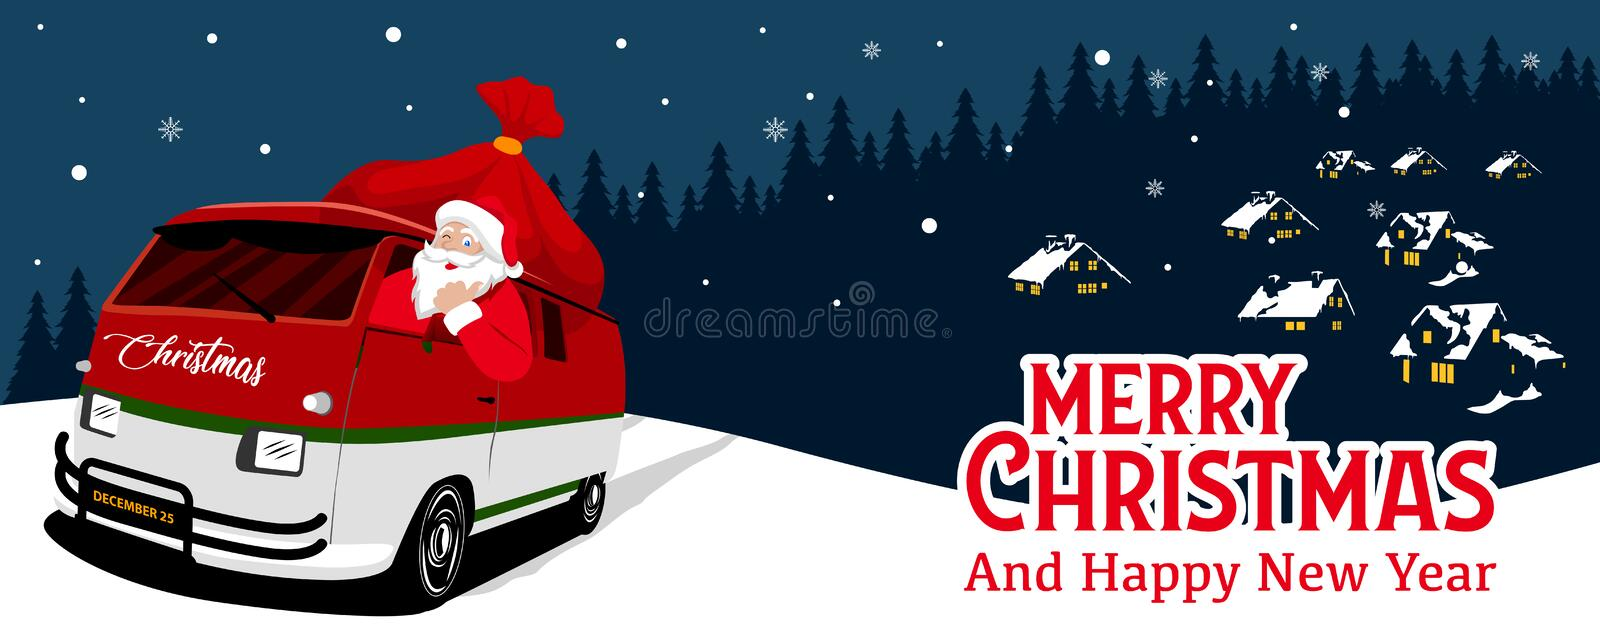 Christmas Banner With Night Background Vector. Santa Claus is Driving the Car royalty free illustration